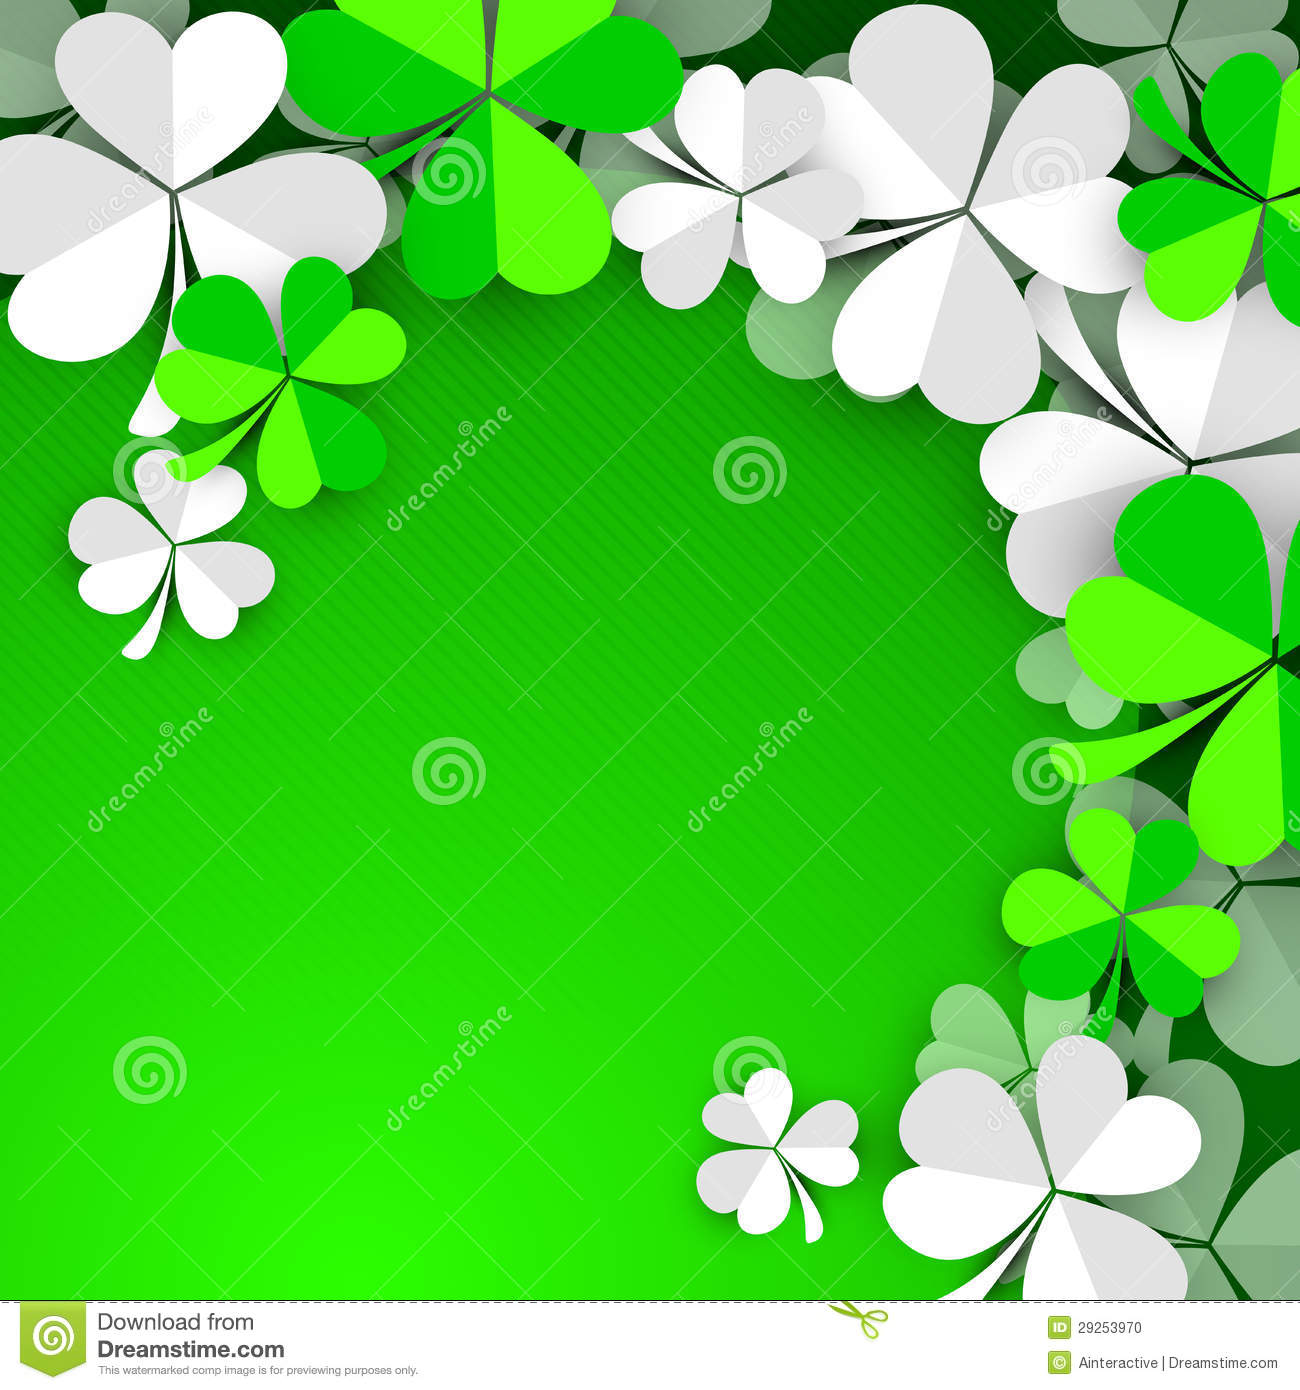 Irish Clover Background Irish shamrock 1300x1390